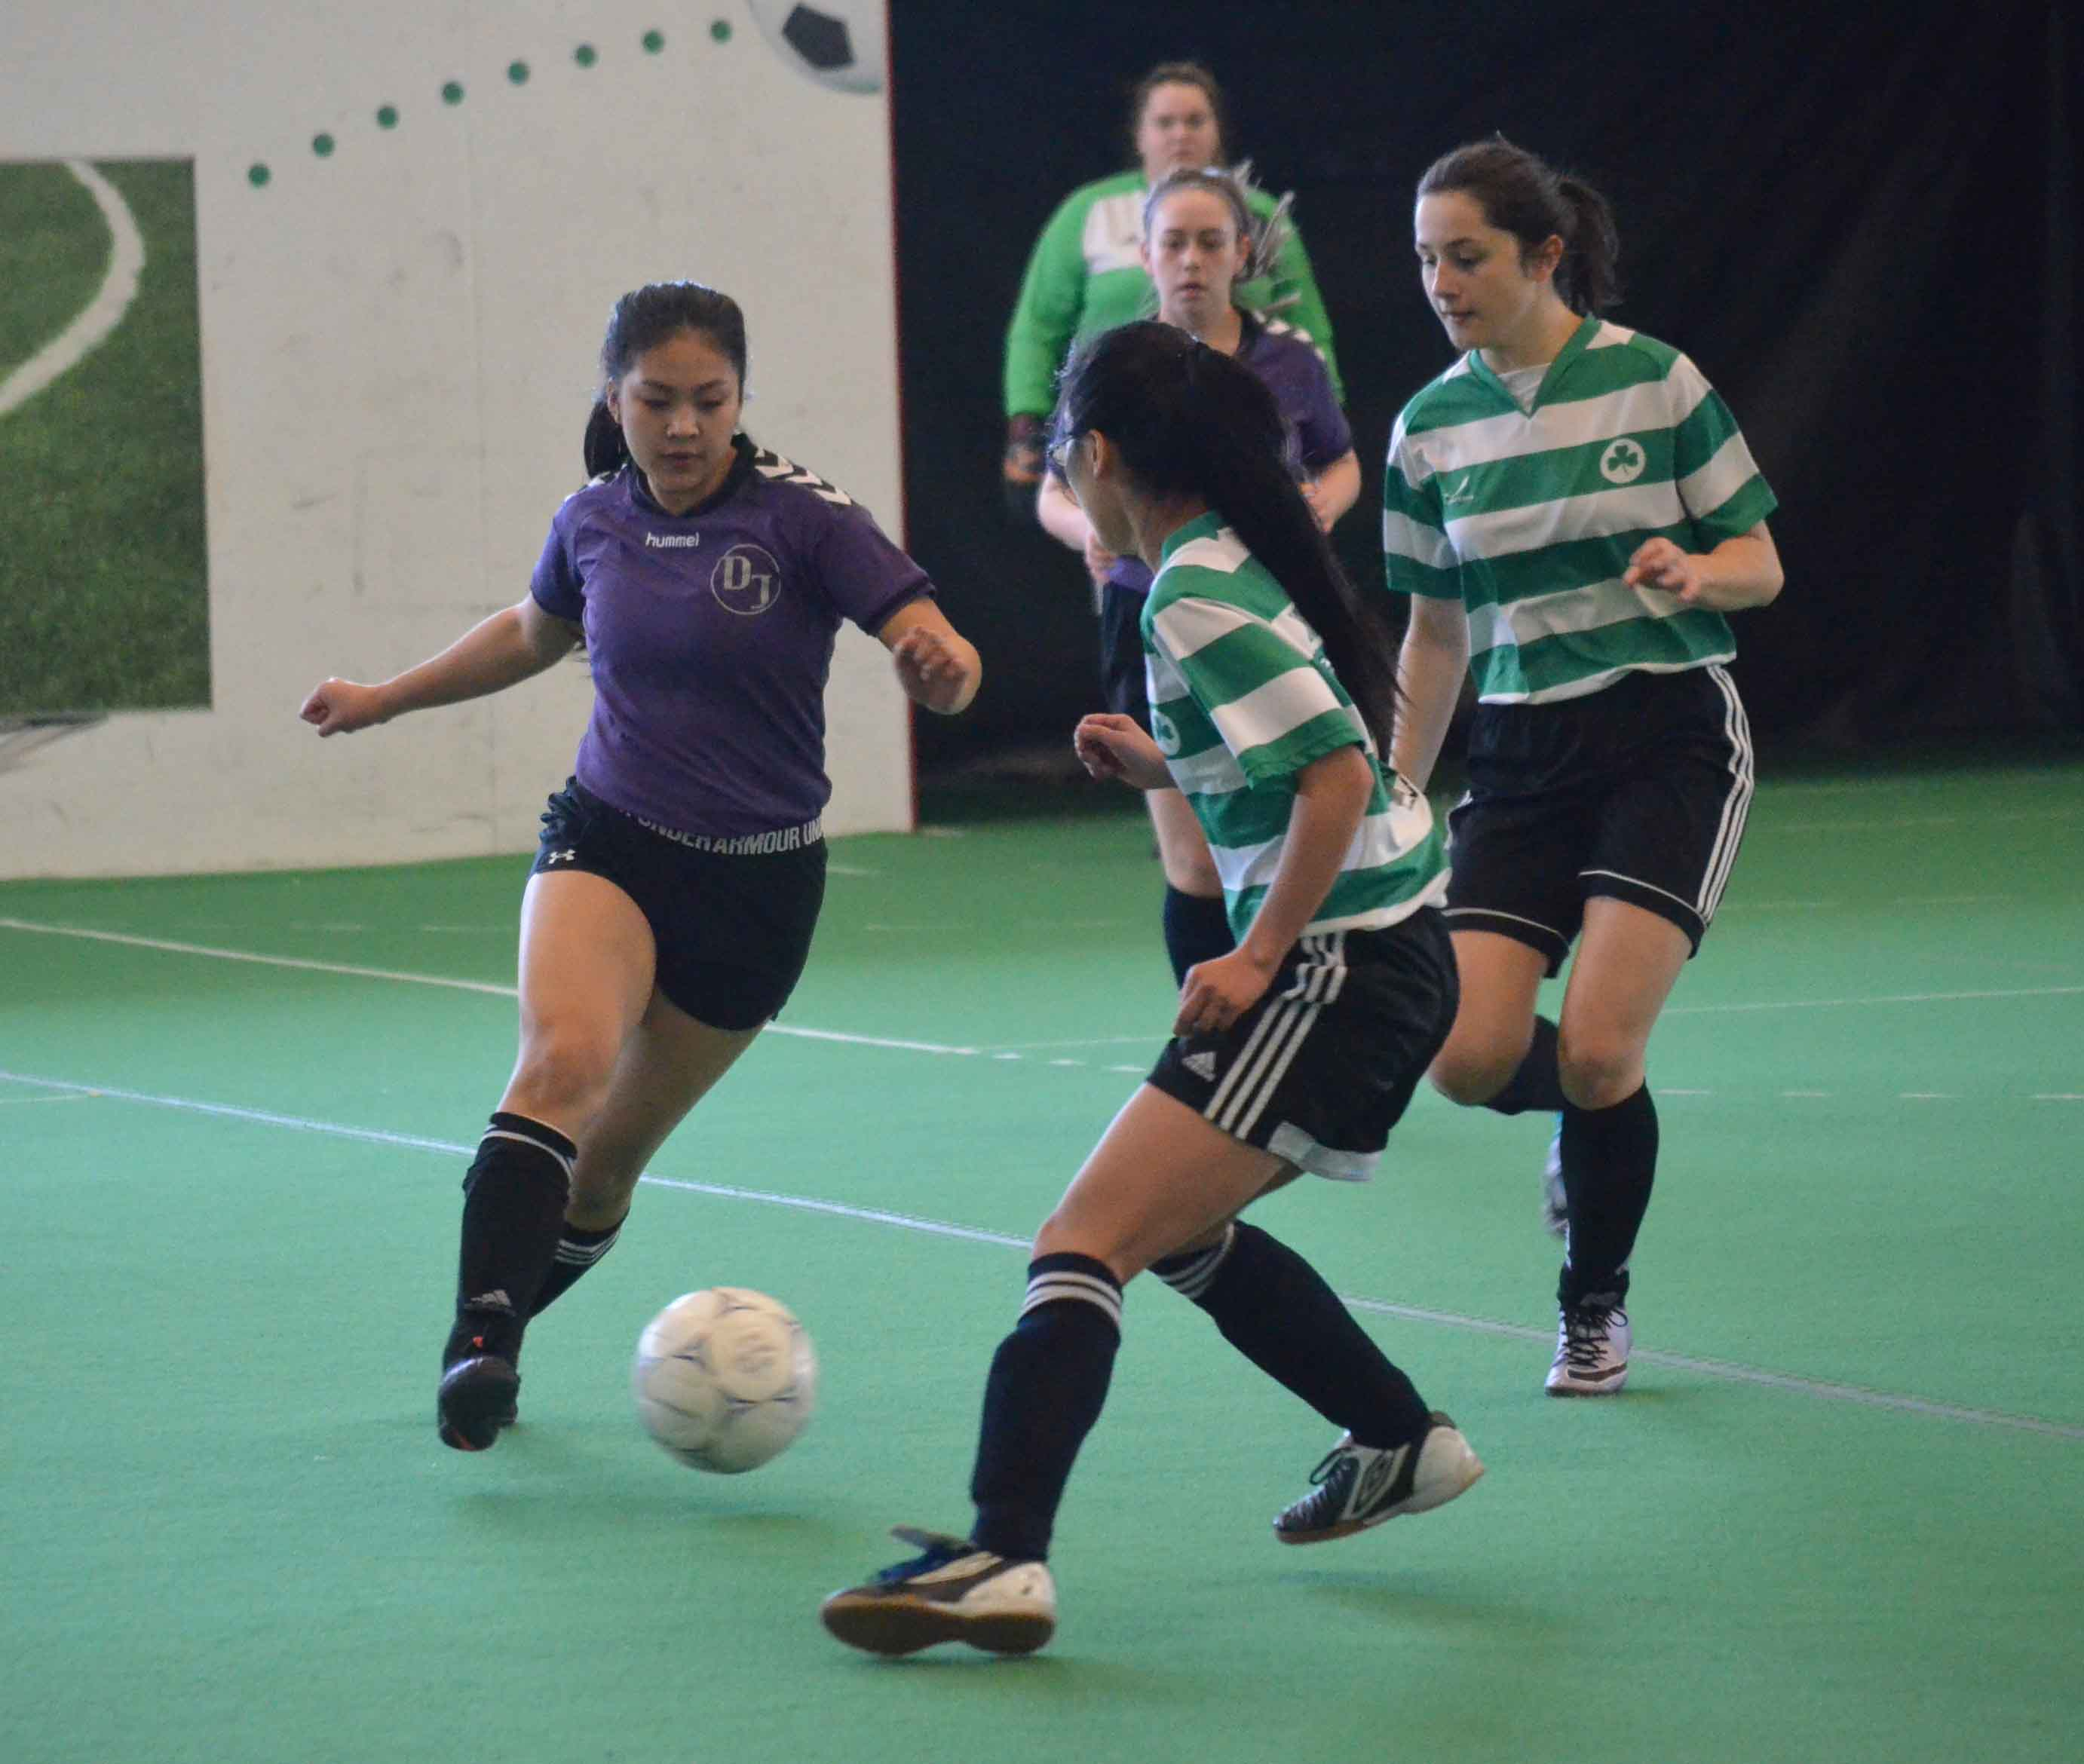 Riella Bordey of the U-19 girls' team from Diamond Jenness Secondary School competes against players from St. Patrick's High School during the recent Senior Super Soccer tournament in Yellowknife. James McCarthy/NNSL photo